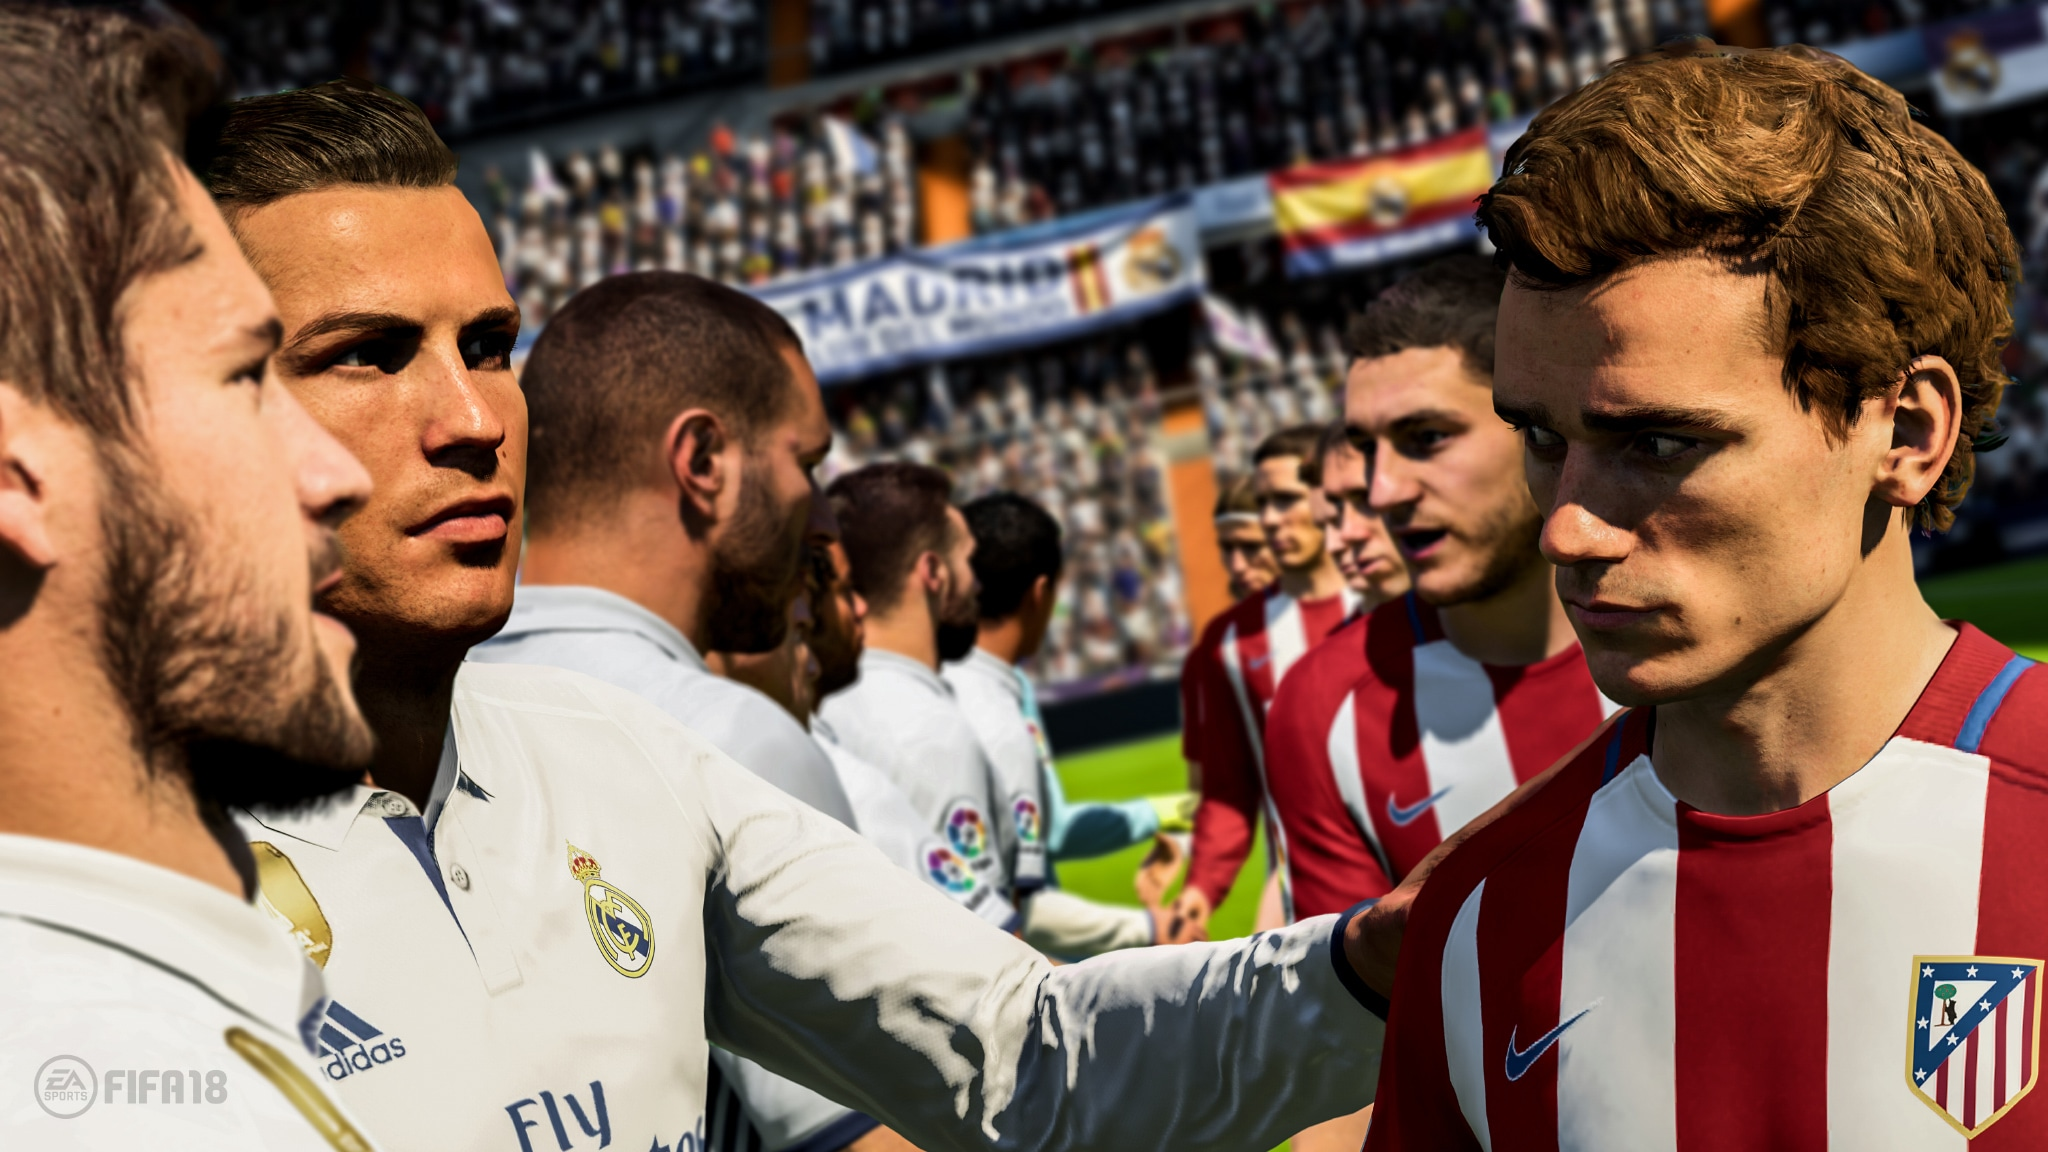 fifa 18 madrid-atletico